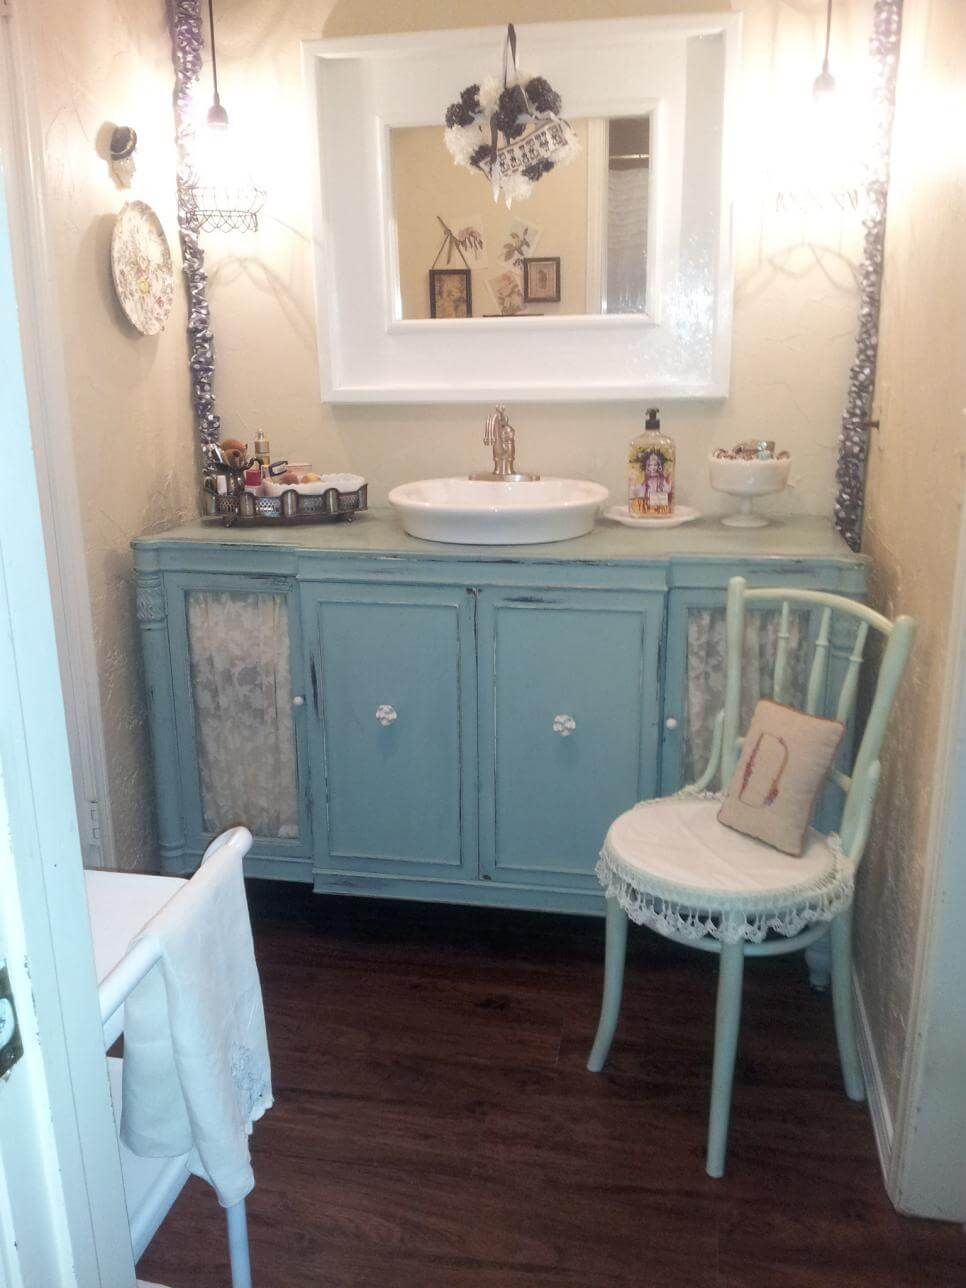 28 Ways To Give Your Bathroom A Shabby Chic Vibe Shabby Chic Bathroom Decor Chic Bathroom Decor Shabby Chic Bathroom Vanity